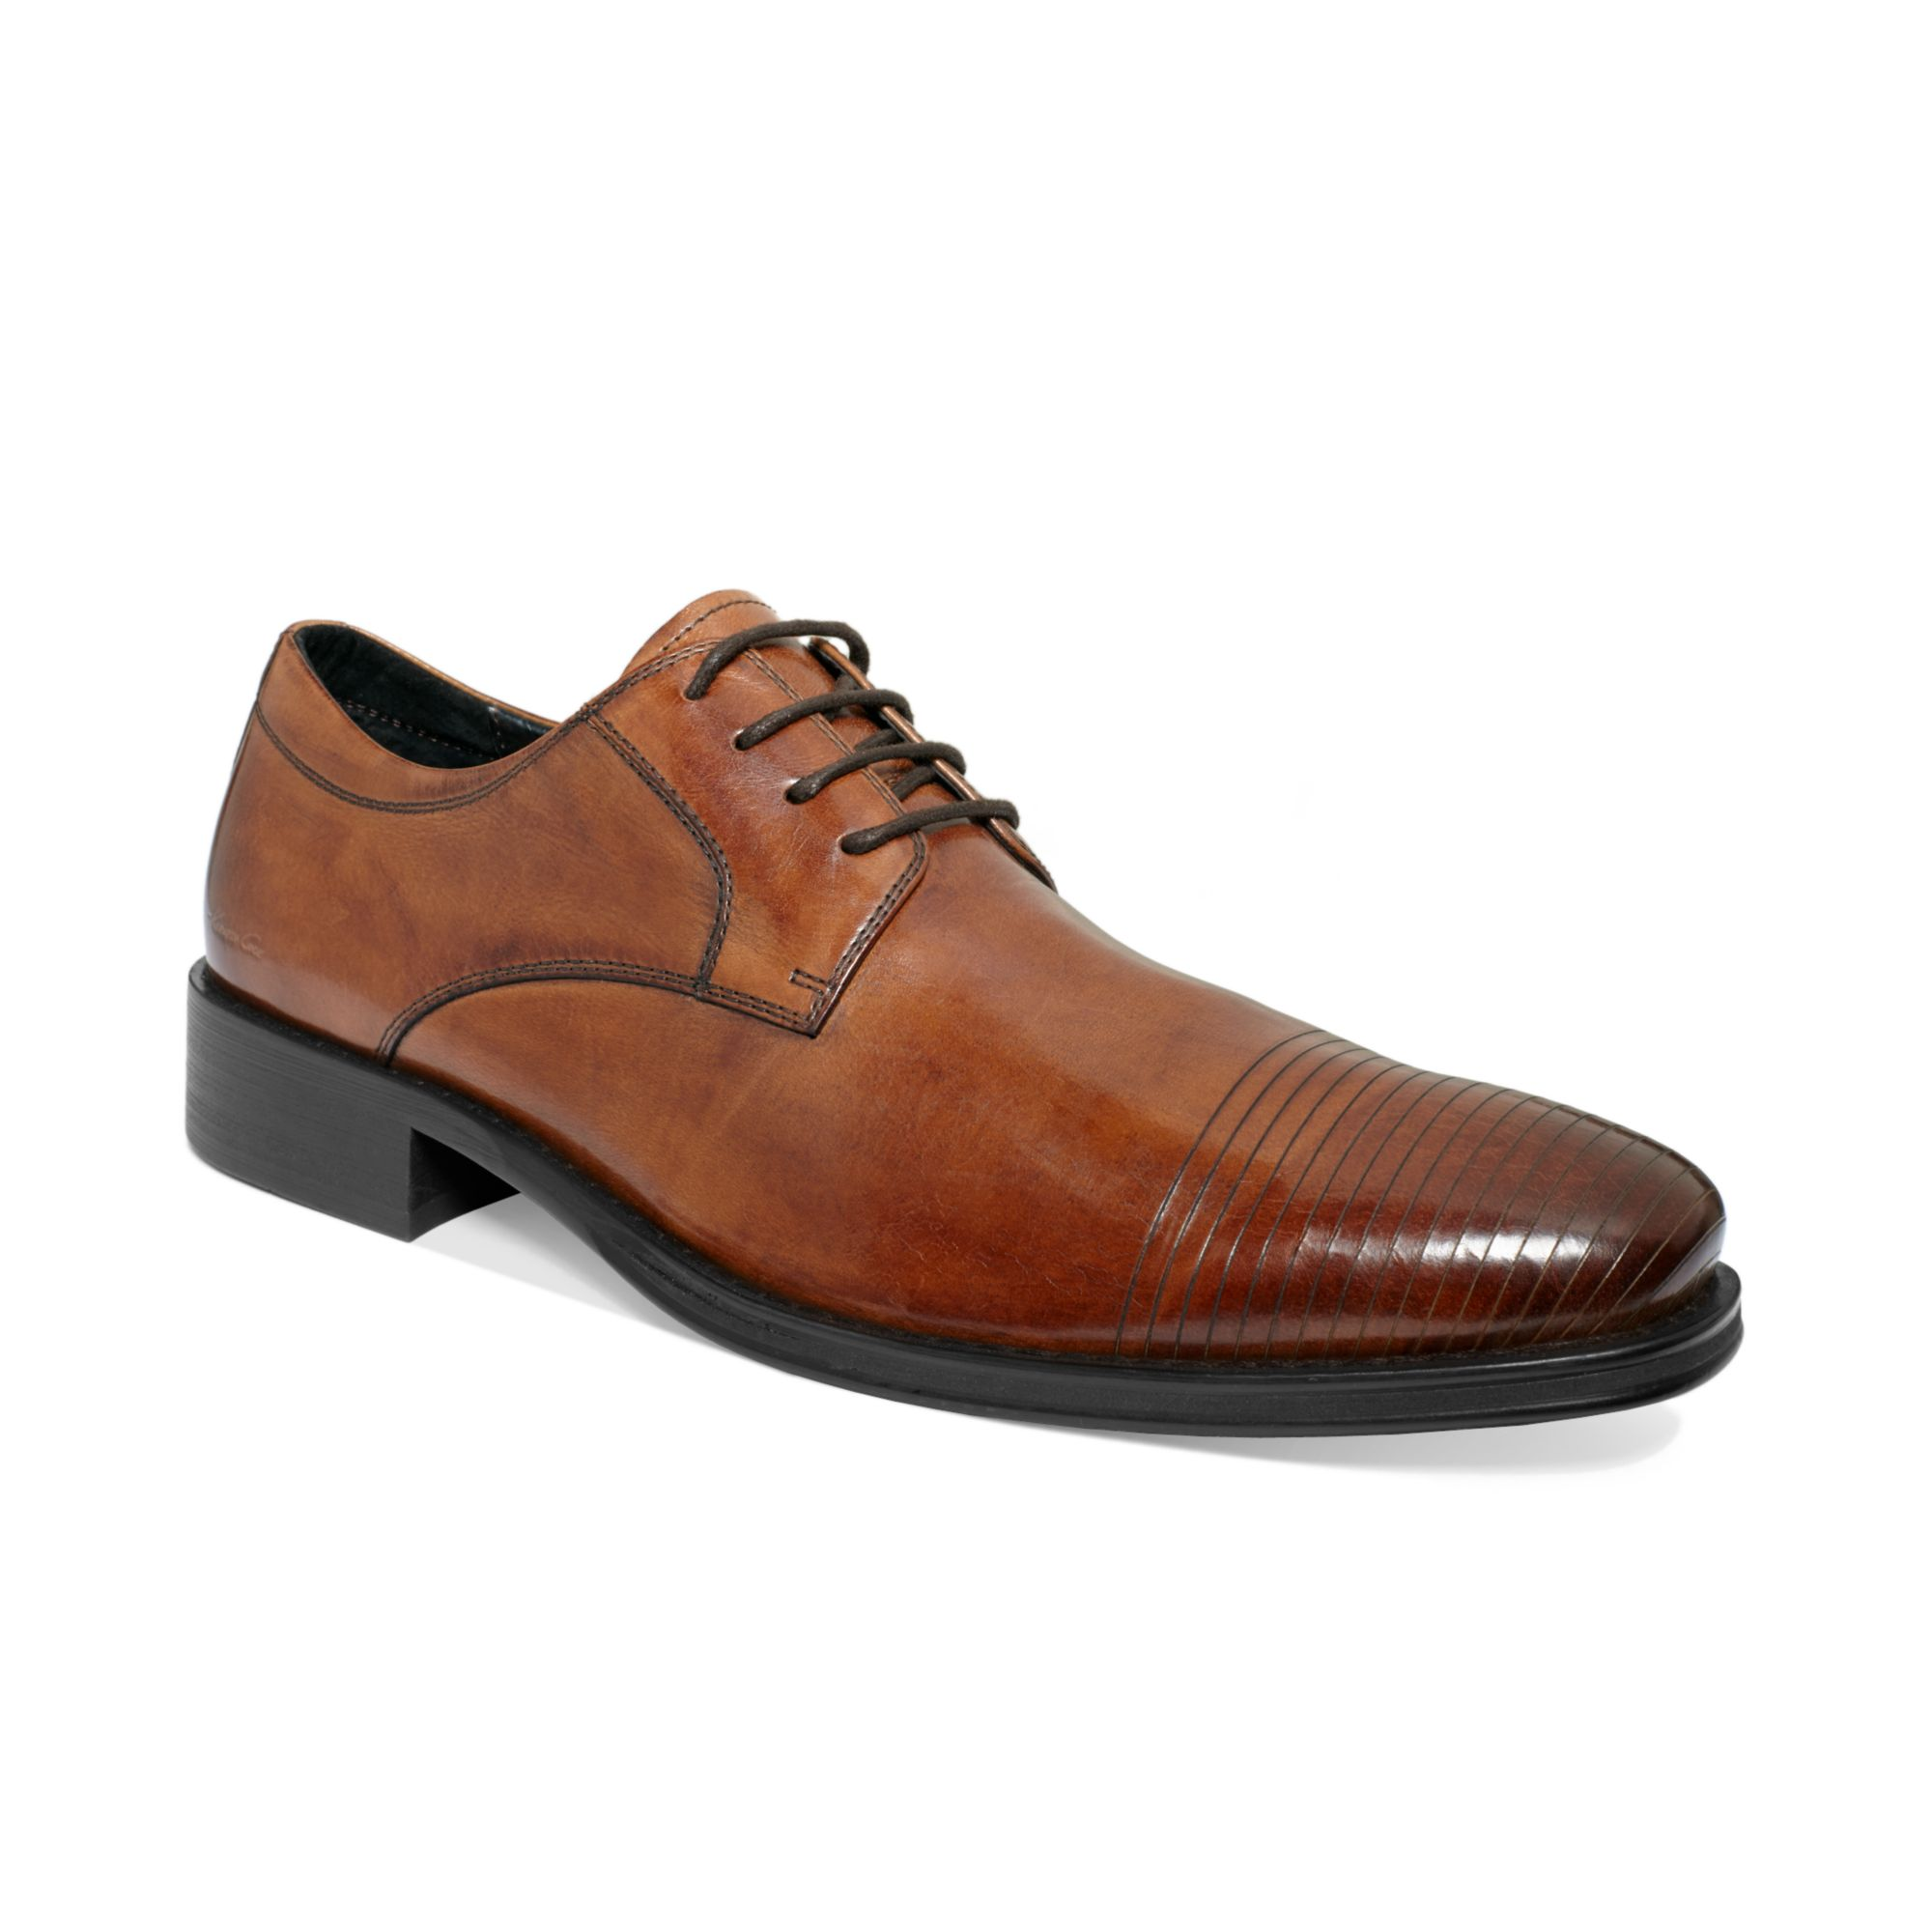 kenneth cole refreshing laceup shoes in brown for